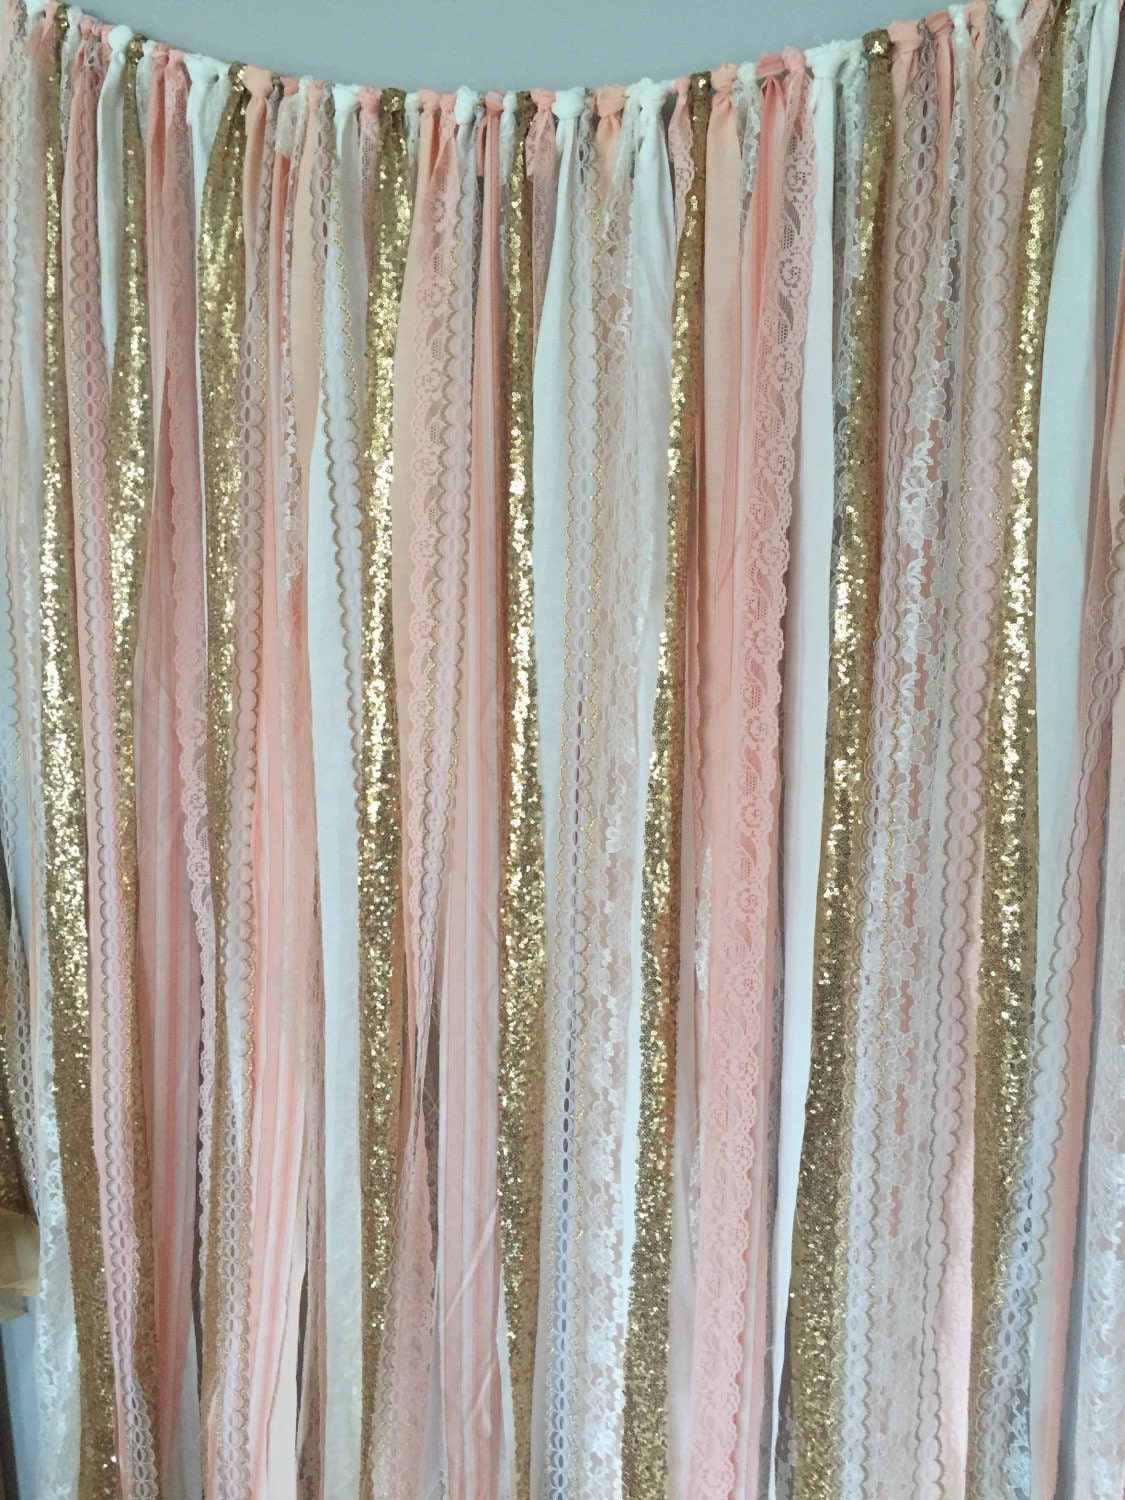 Peach Pink Gold Sparkle Sequin Fabric Backdrop With Lace